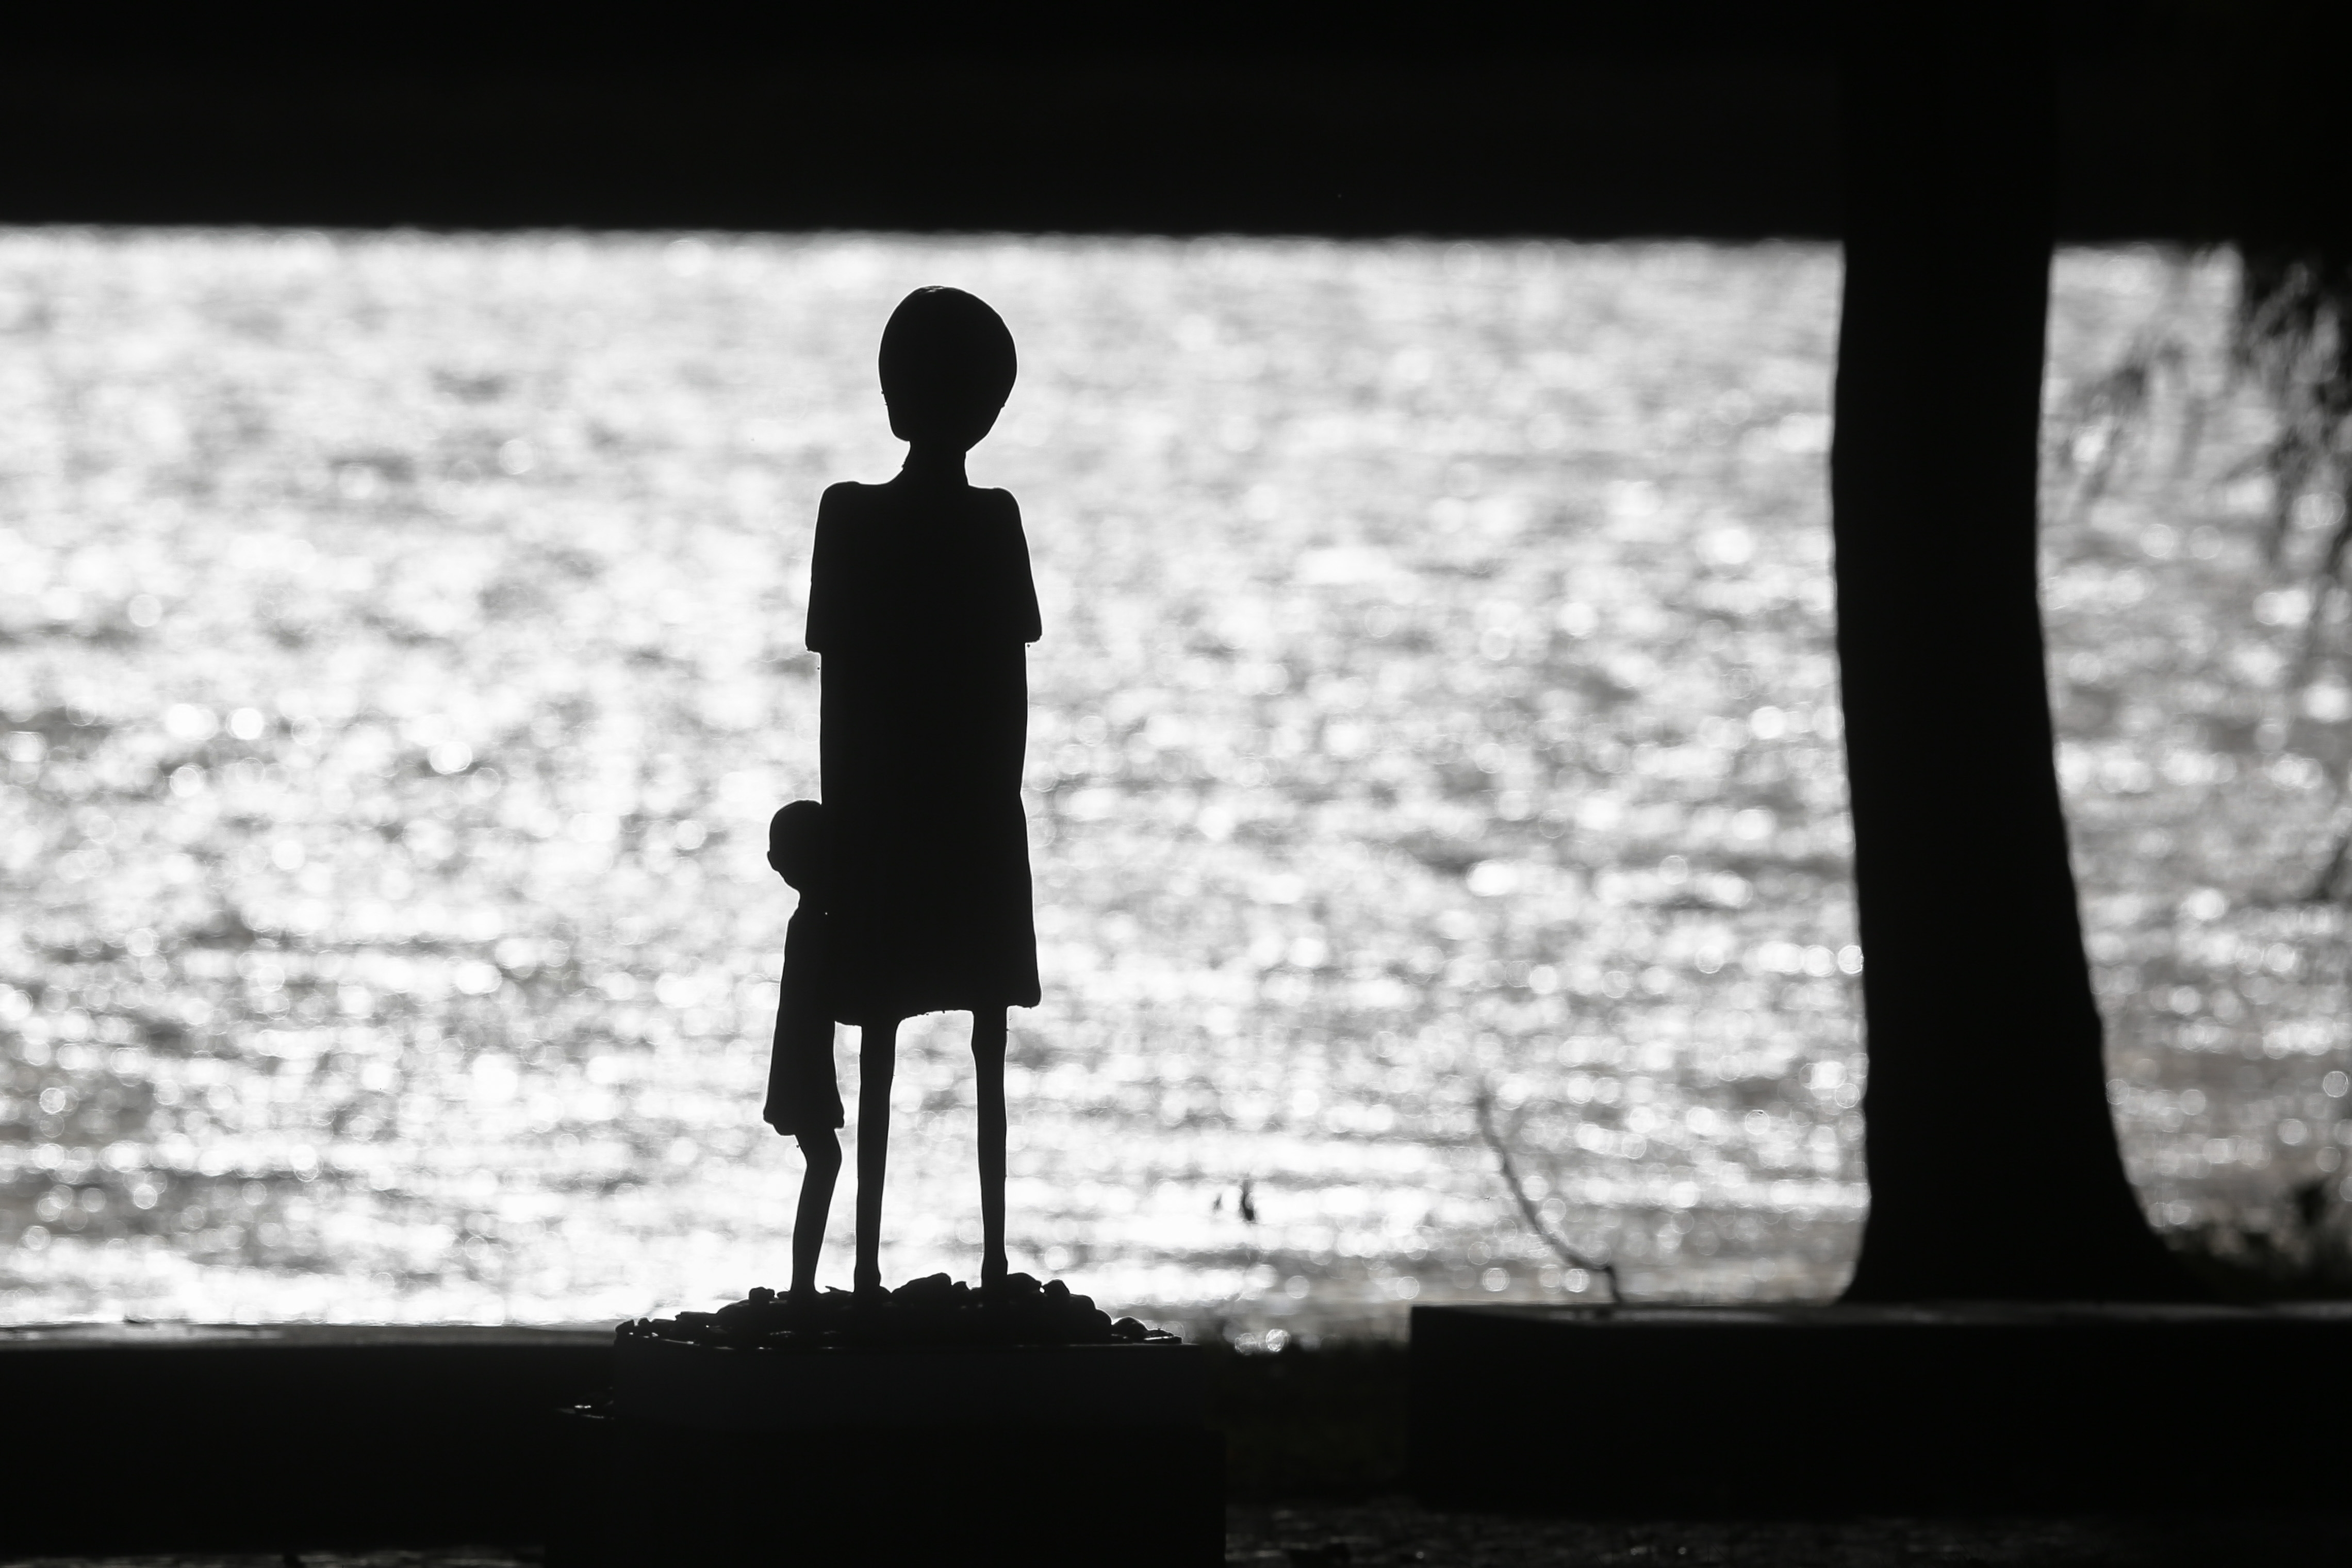 A sculpture of a woman and a child is silhouetted against the water of Schwedsee lake at Nazi death camp Ravensbrueck about 100 kilometers (62 miles) north of Berlin, Thursday, Nov. 7, 2013. On Nov. 9, 2013 Germany remembers the 75th anniversary of the 'Kristallnacht', 'Night Of The Broken Glasses' or 'November Pogrom'. On Nov. 9, 1939  the Nazis coordinated a wave of attacks in Germany and Austria, smashing windows, burning synagogues, ransacking homes and looting Jewish-owned stores. (AP Photo/Markus Schreiber)